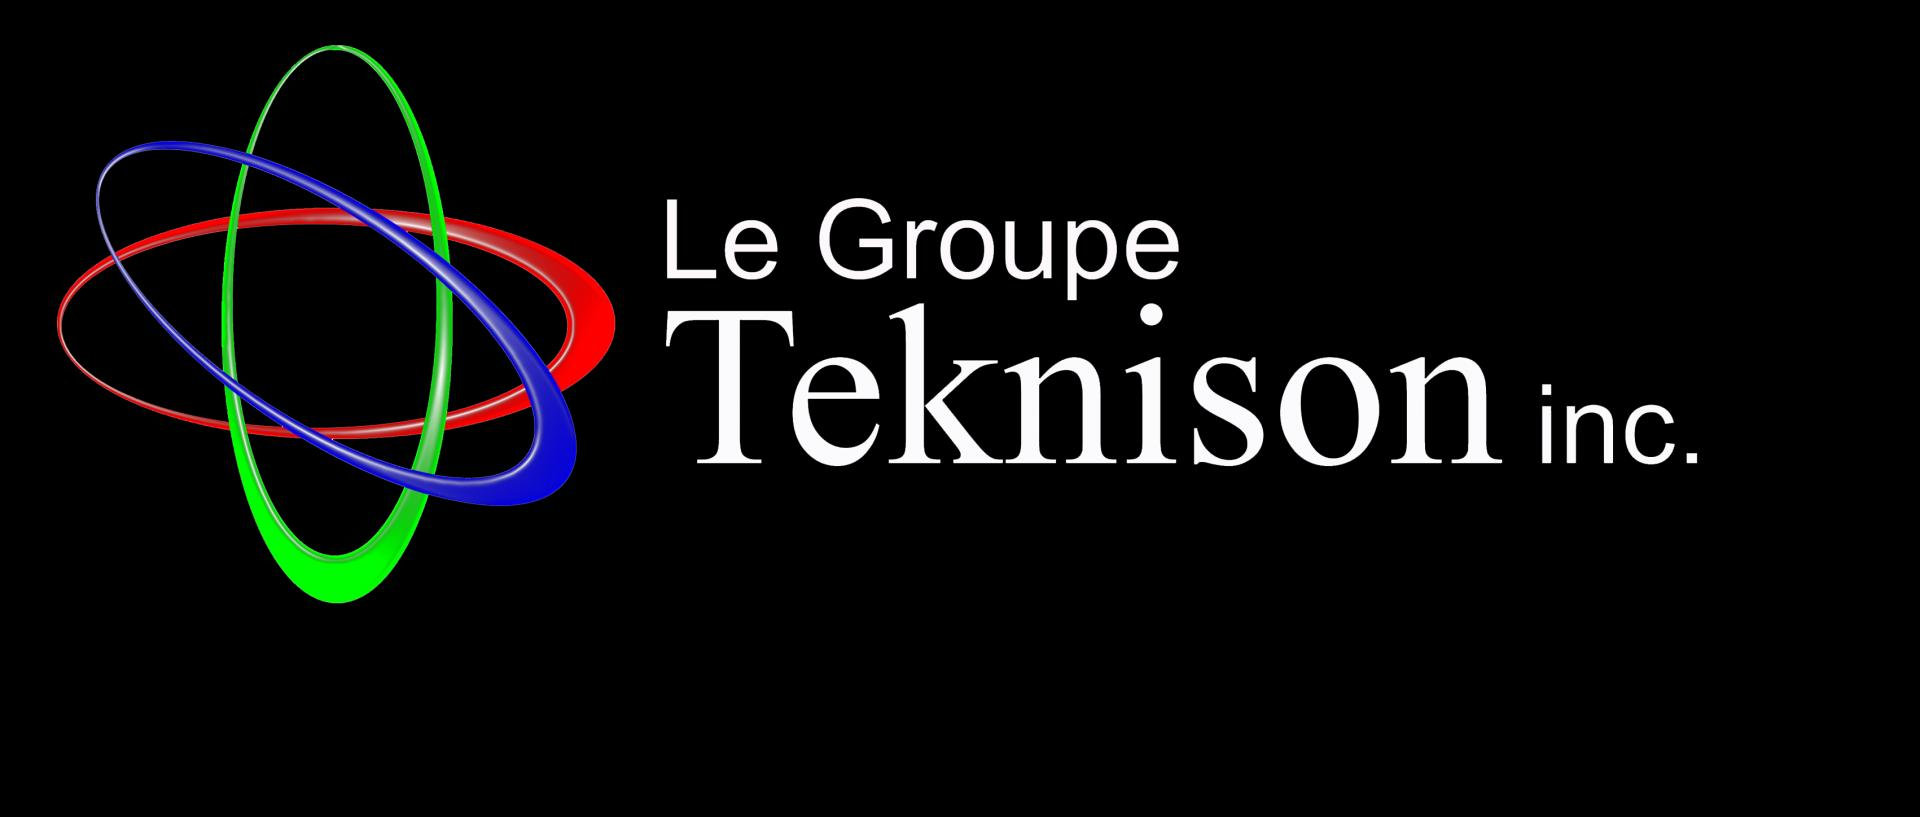 Le groupe Teknison Inc